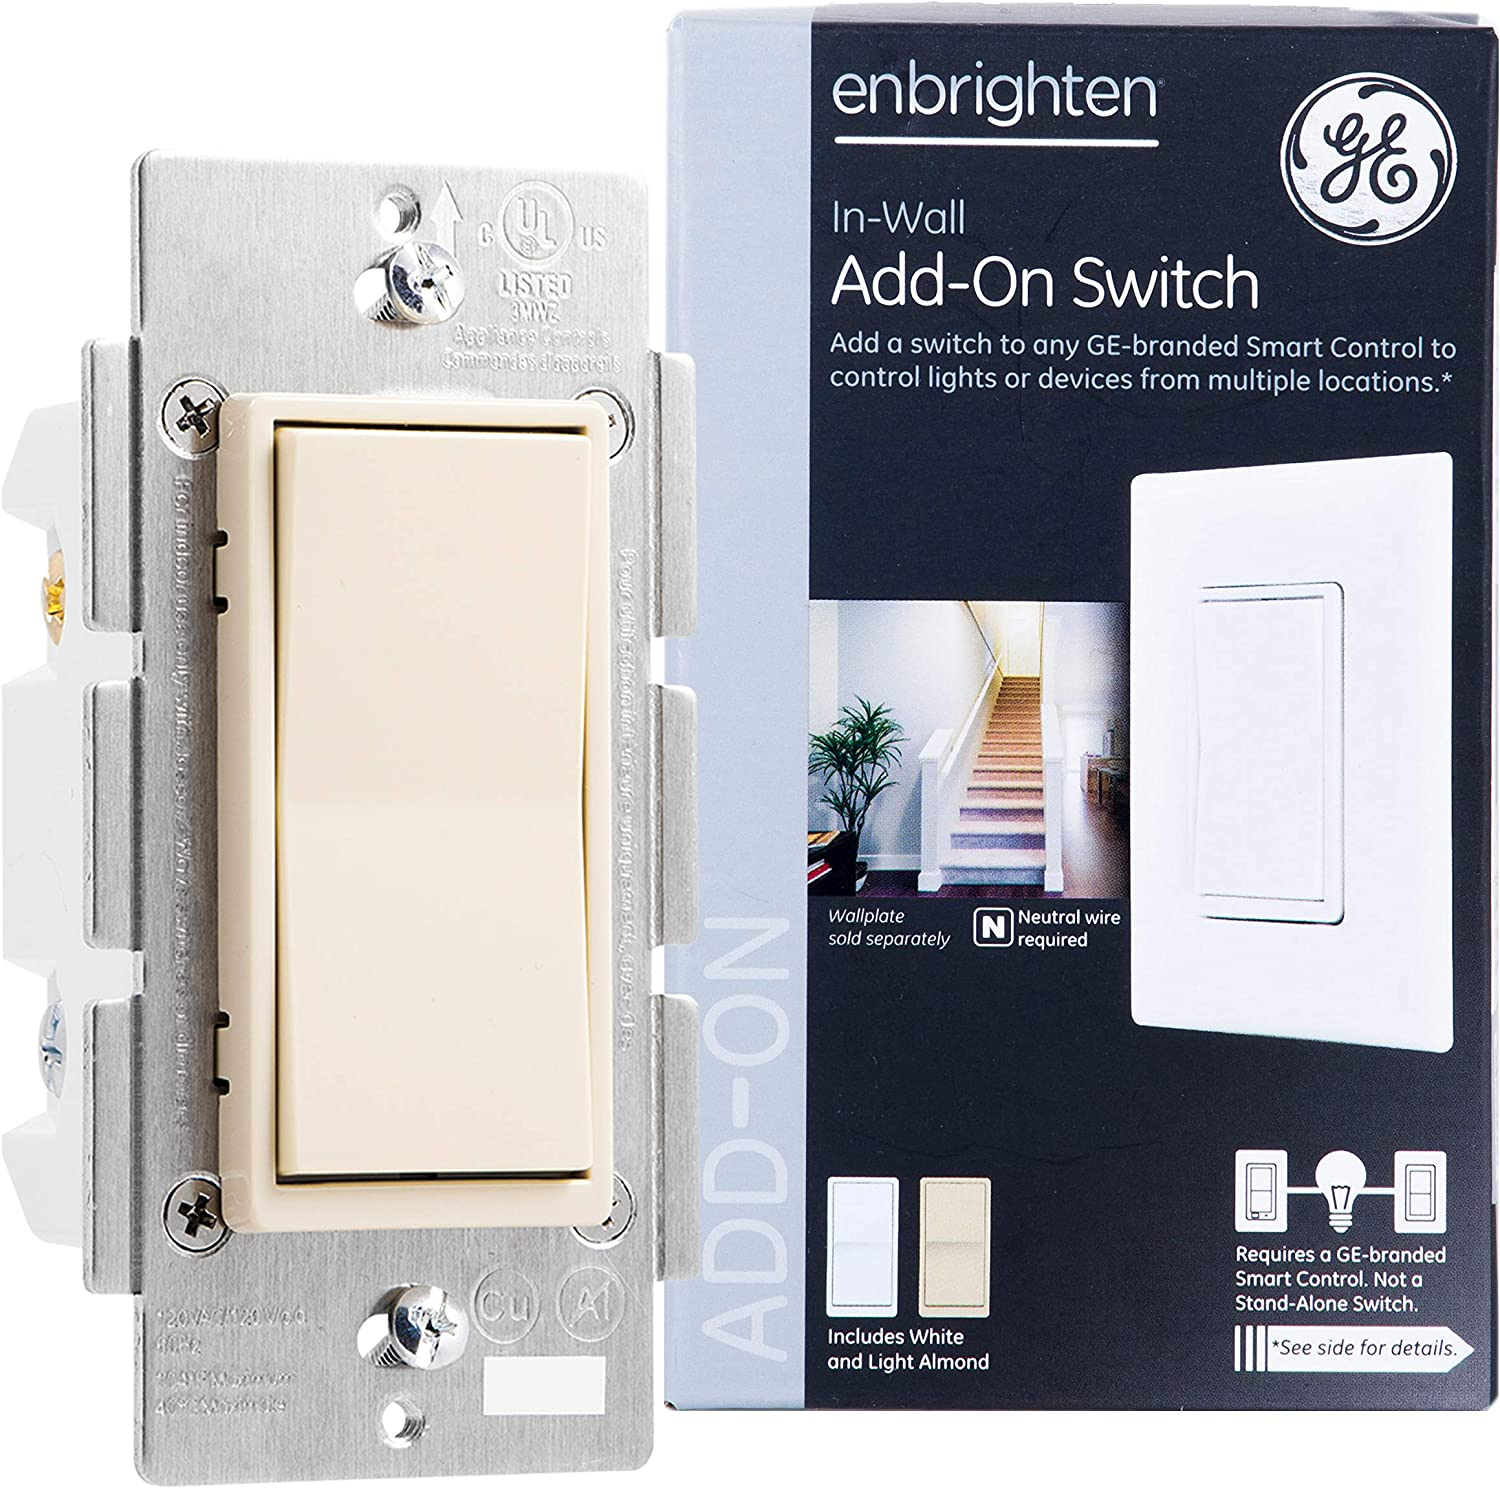 GE Enbrighten Add-On Switch for GE Z-Wave/GE Zigbee Smart Lighting Controls, Works with Alexa, Google Assistant, NOT A STANDALONE SWITCH, Ivory, 38195